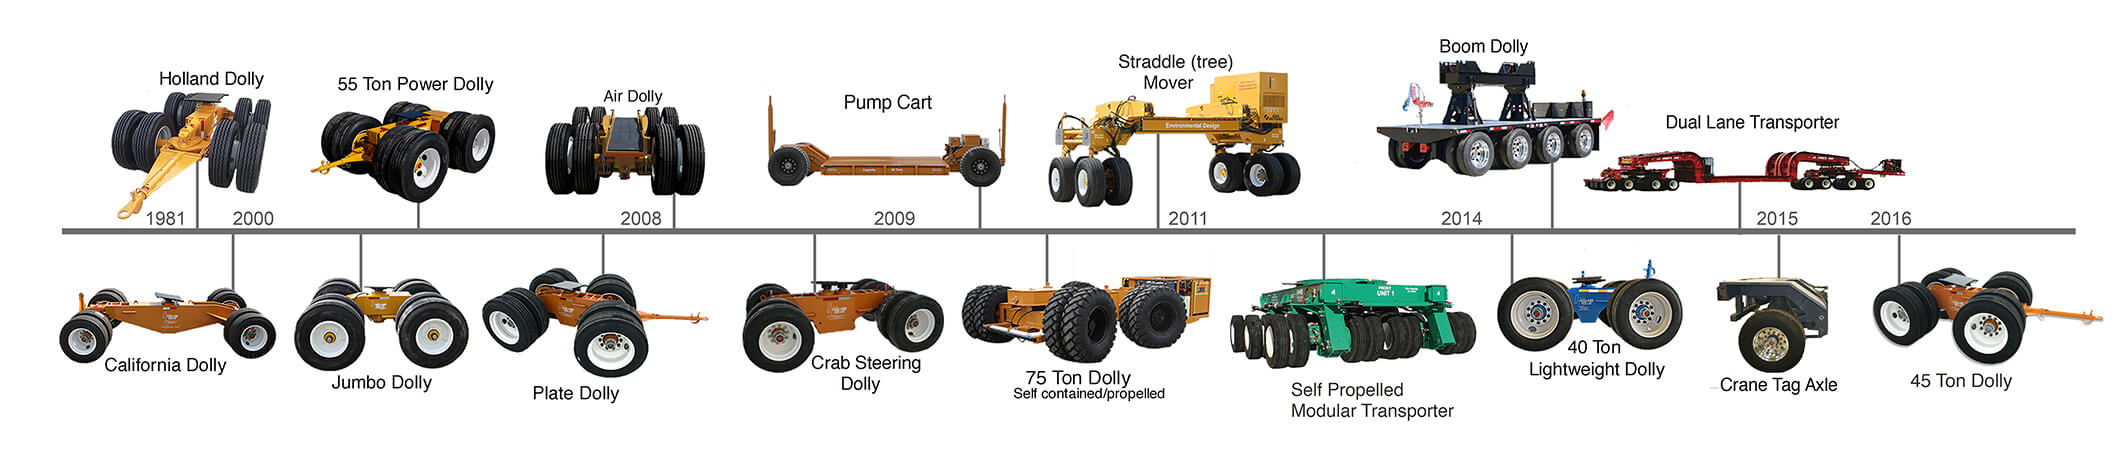 Historical timeline of development of Holland dolly products.